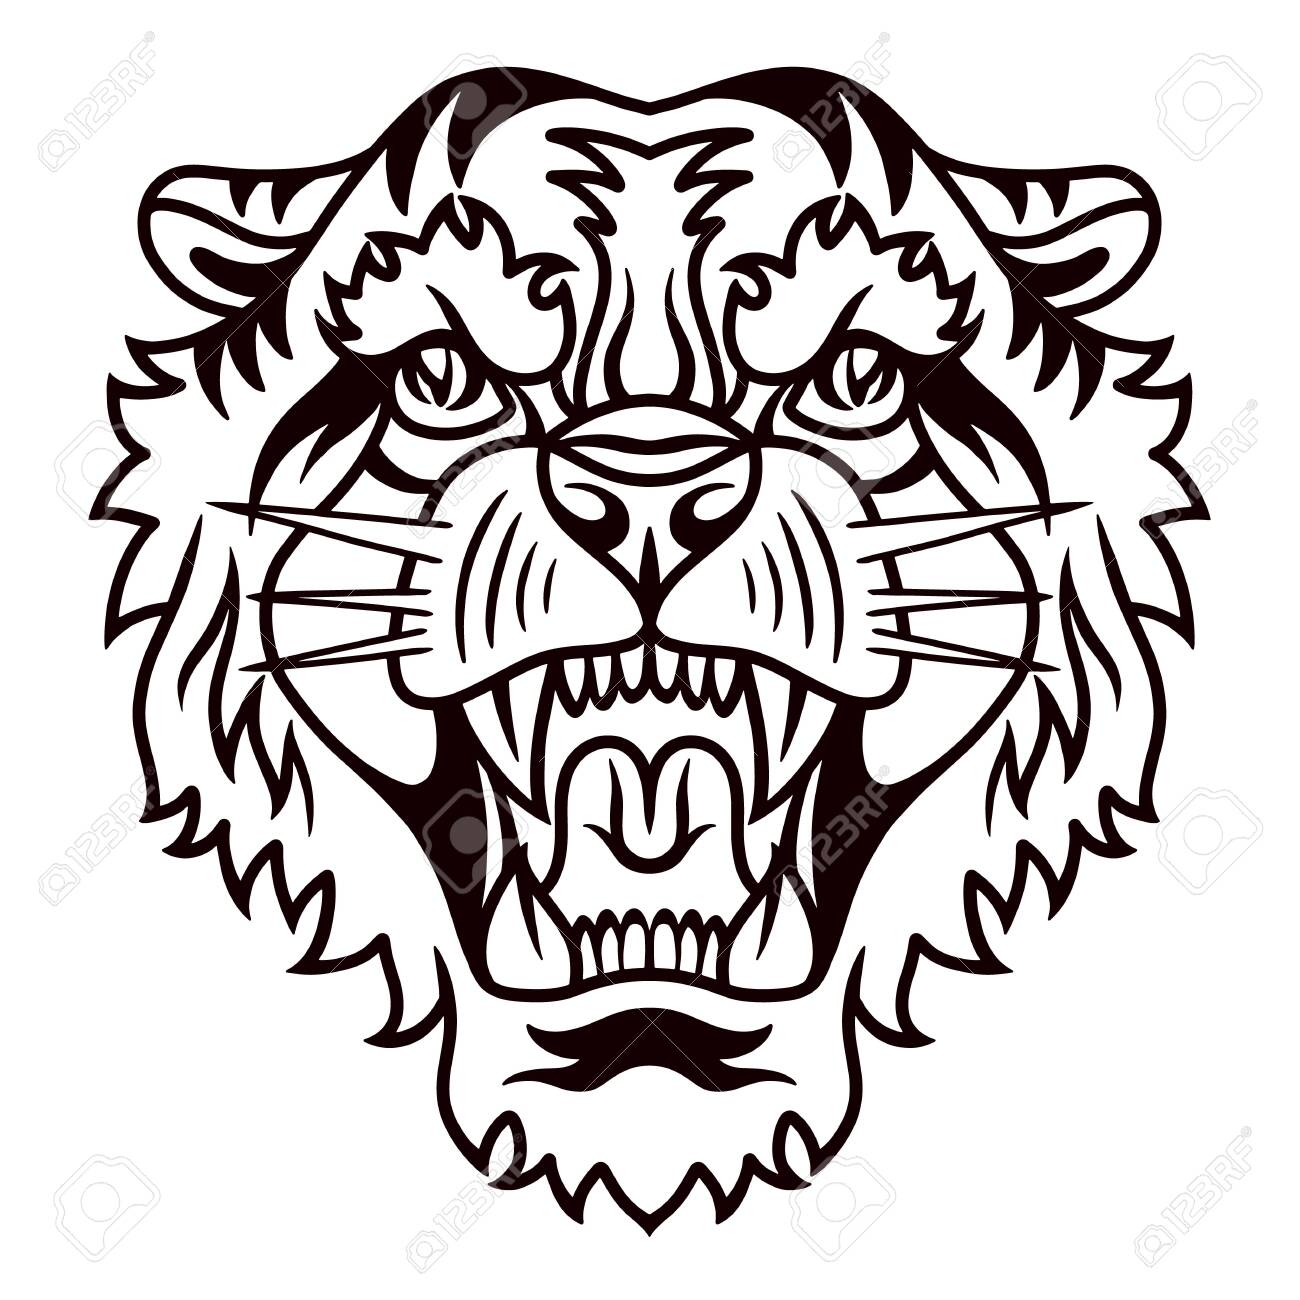 Tiger old school hand drawn retro style. Design element for poster, card, banner. Vector illustration. - 133801254